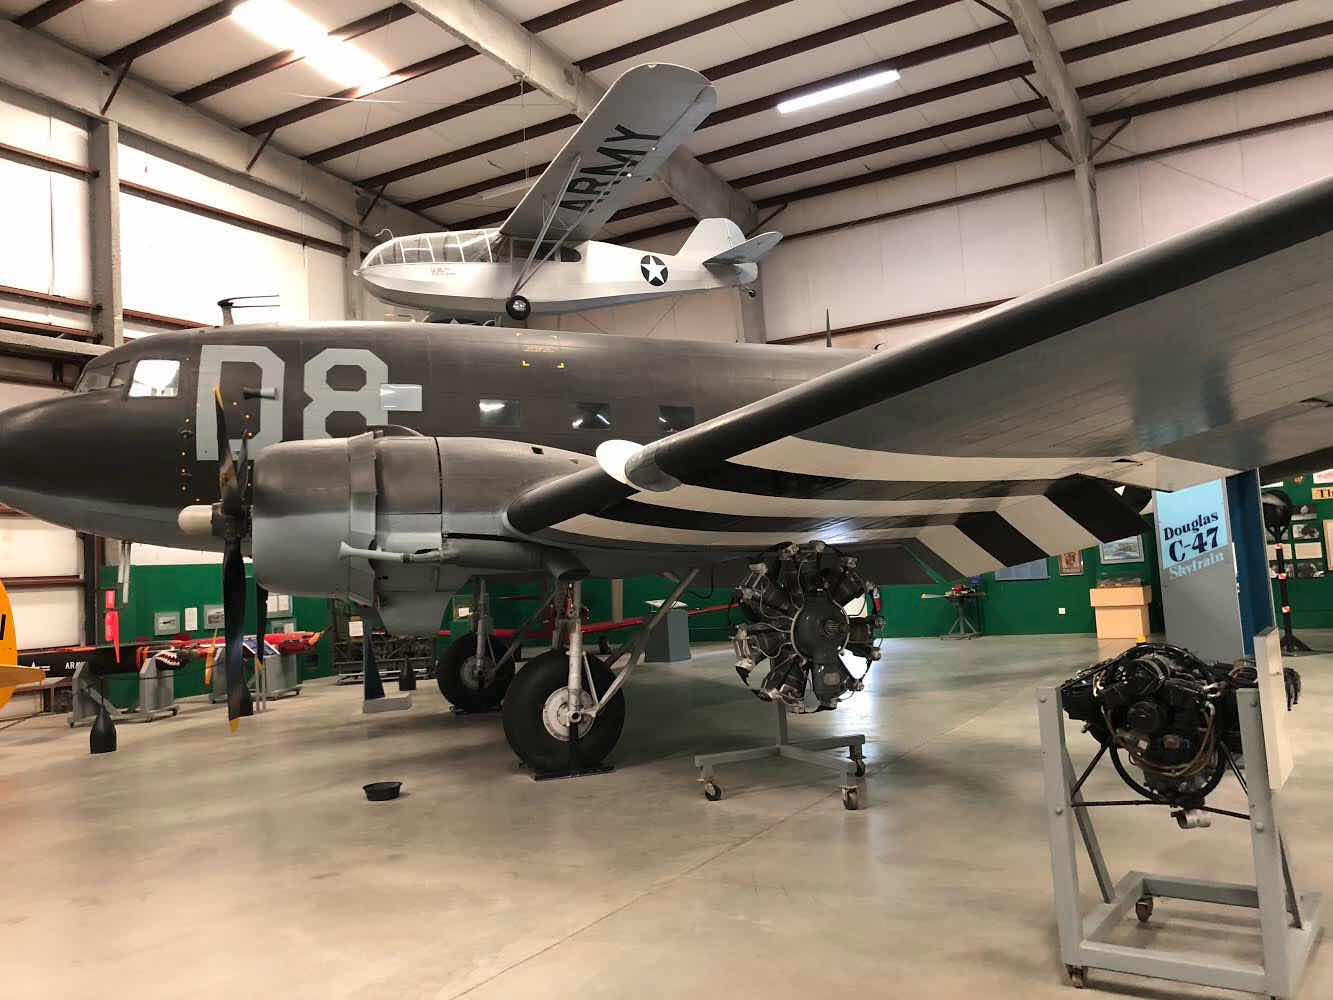 The C-47 was one type of aircraft my father flew in WWII (Source: Palmia Observatory)